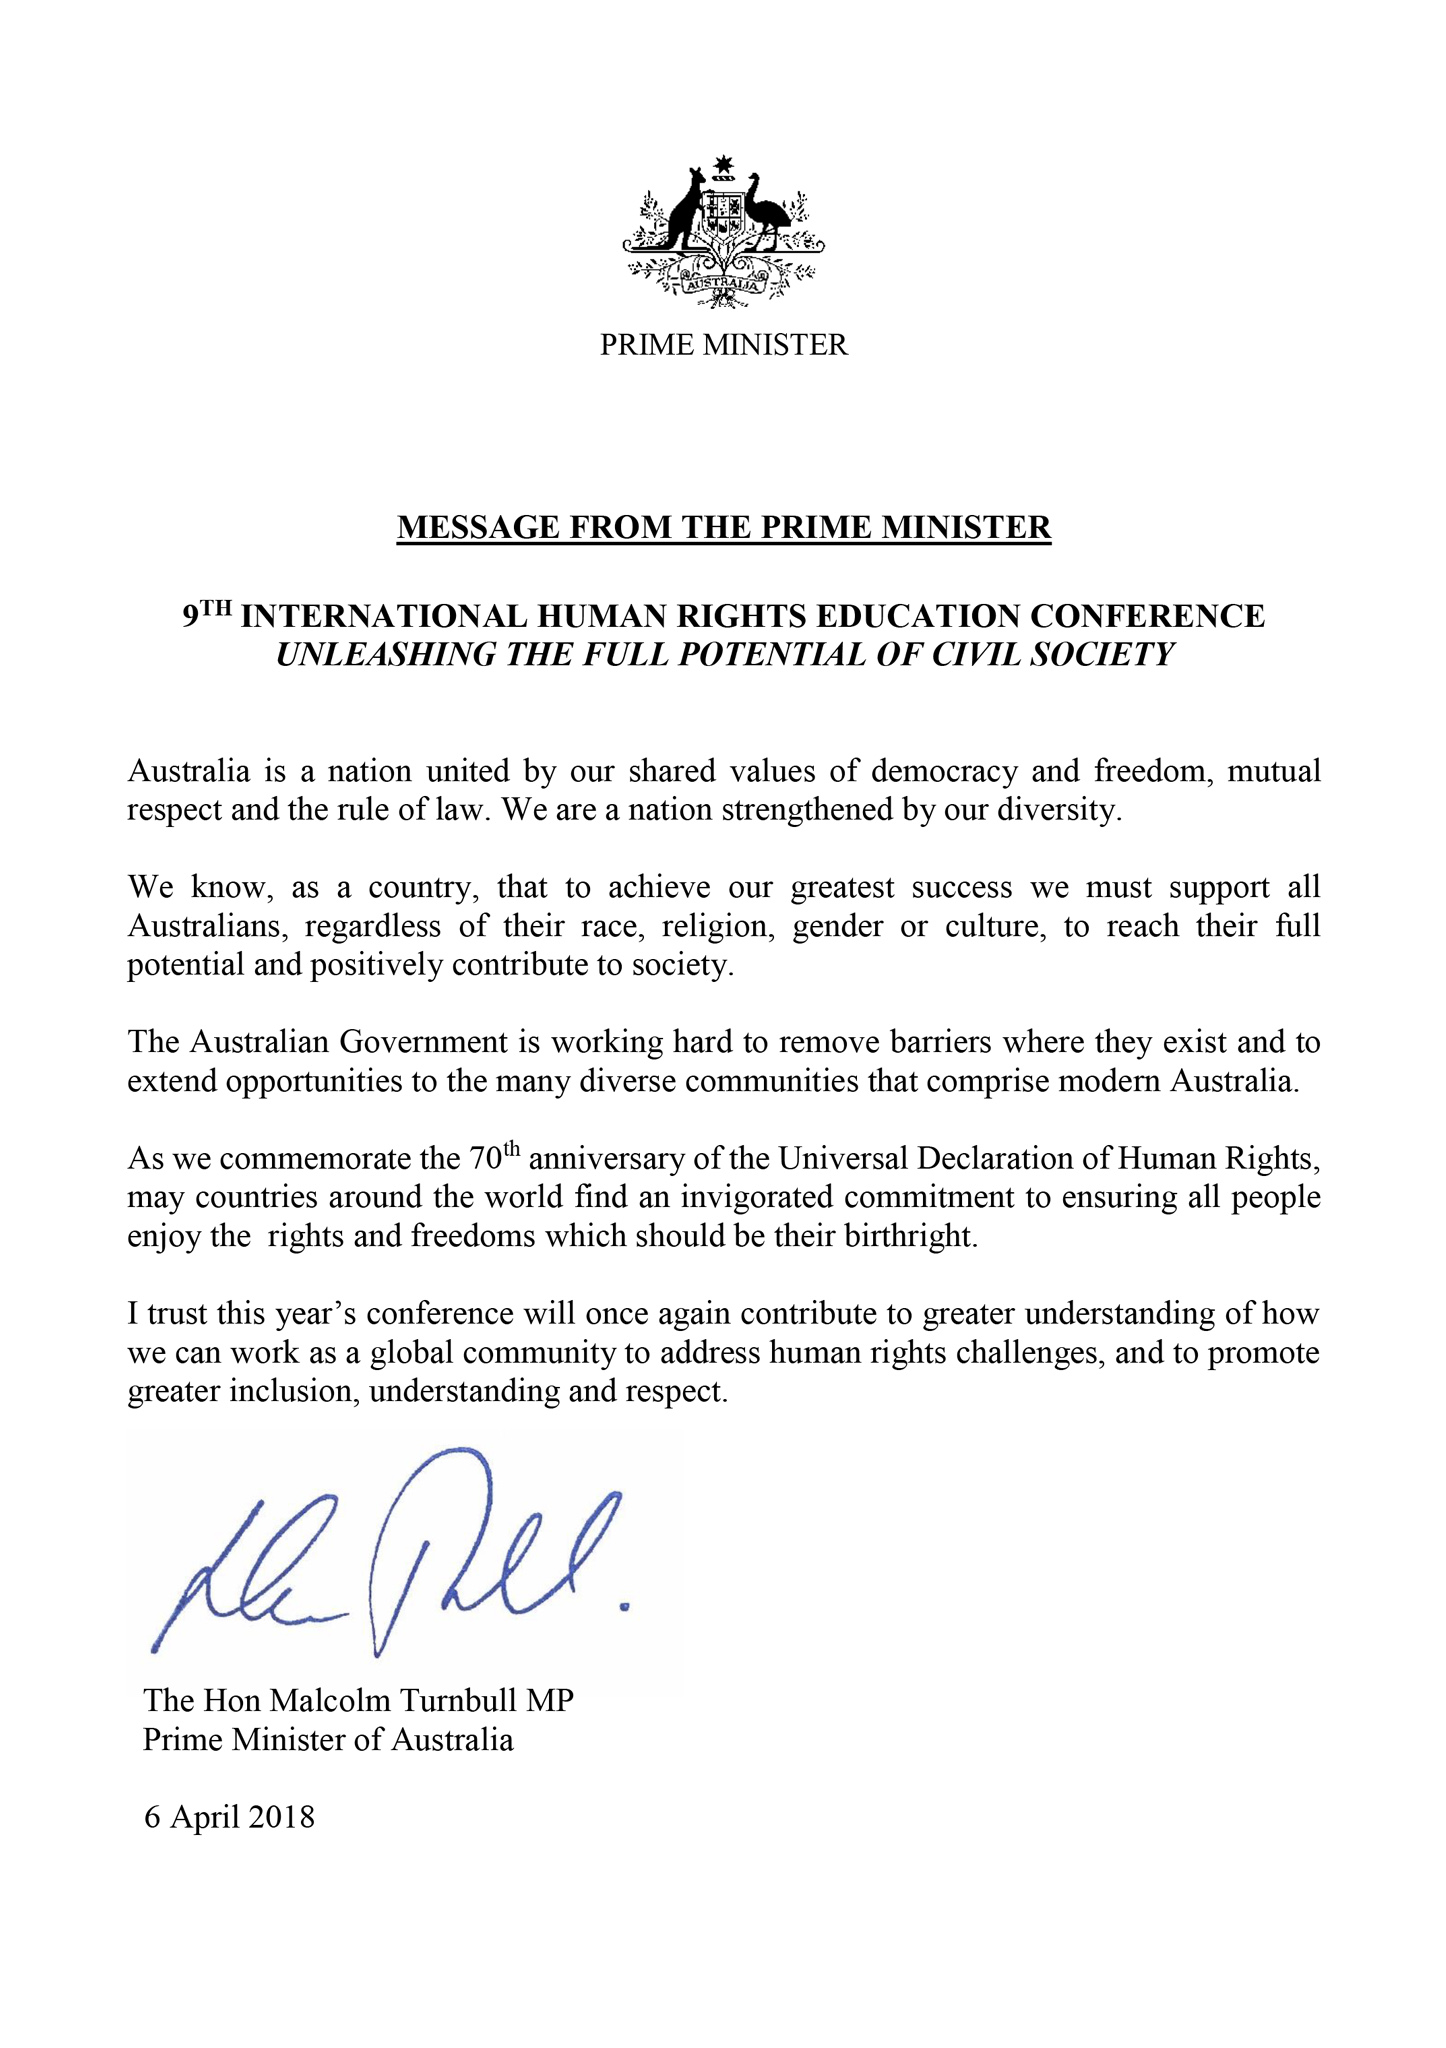 9th ICHRE Conference, International Conference on Human Rights Education, Priminister Malcolm Turnbull